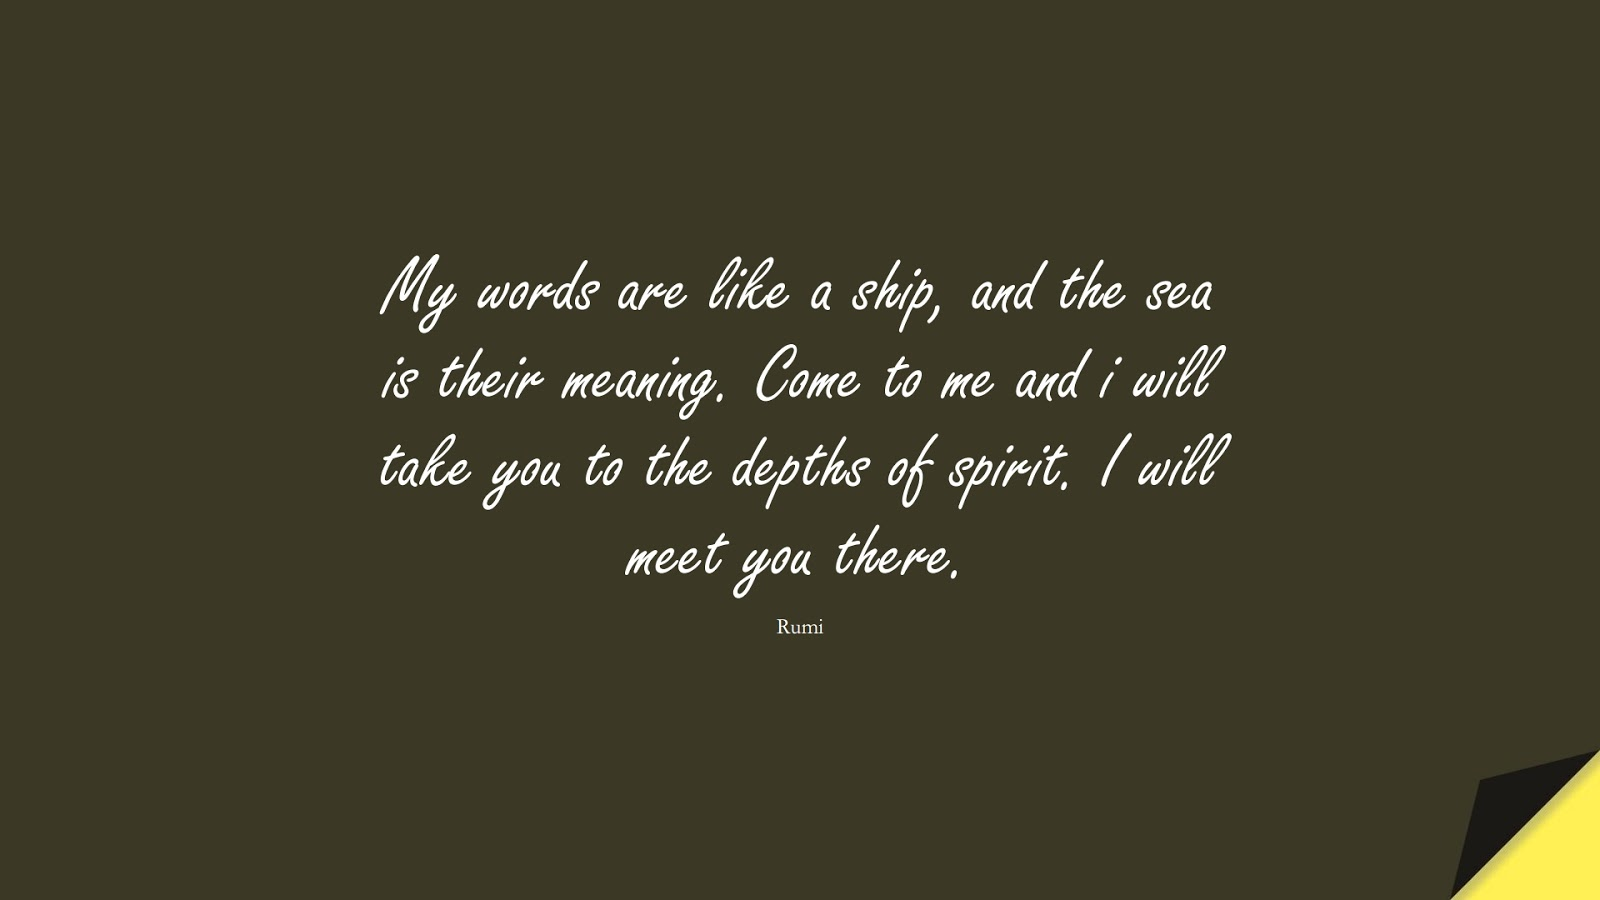 My words are like a ship, and the sea is their meaning. Come to me and i will take you to the depths of spirit. I will meet you there. (Rumi);  #RumiQuotes